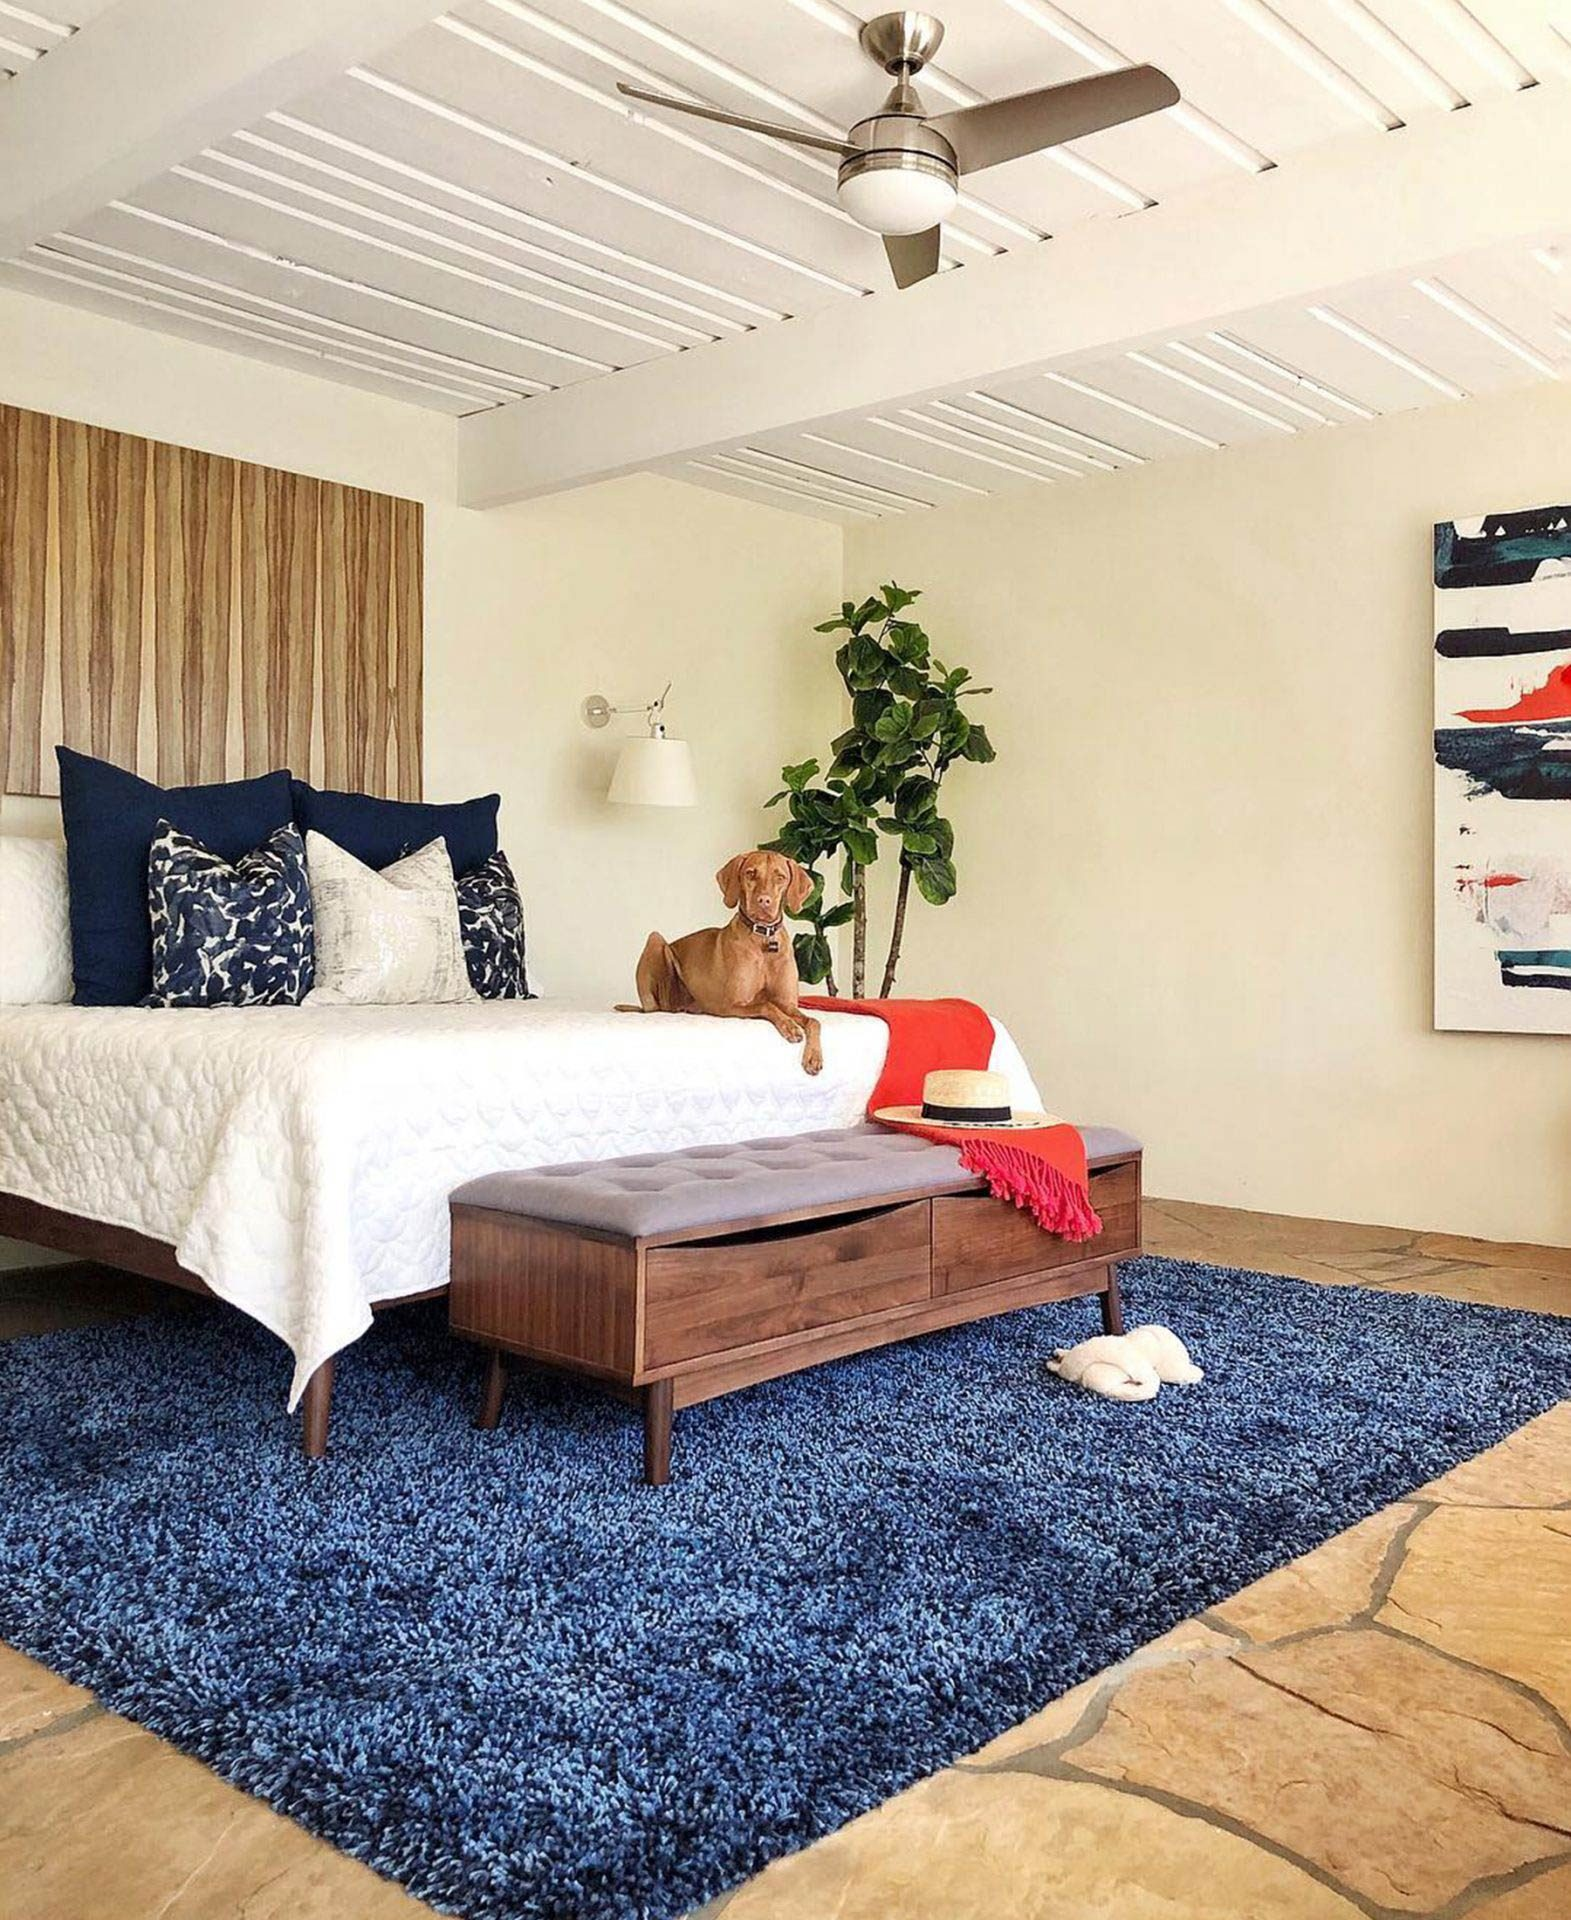 My Style Diaries outfits a bedroom with Article's Culla bench.